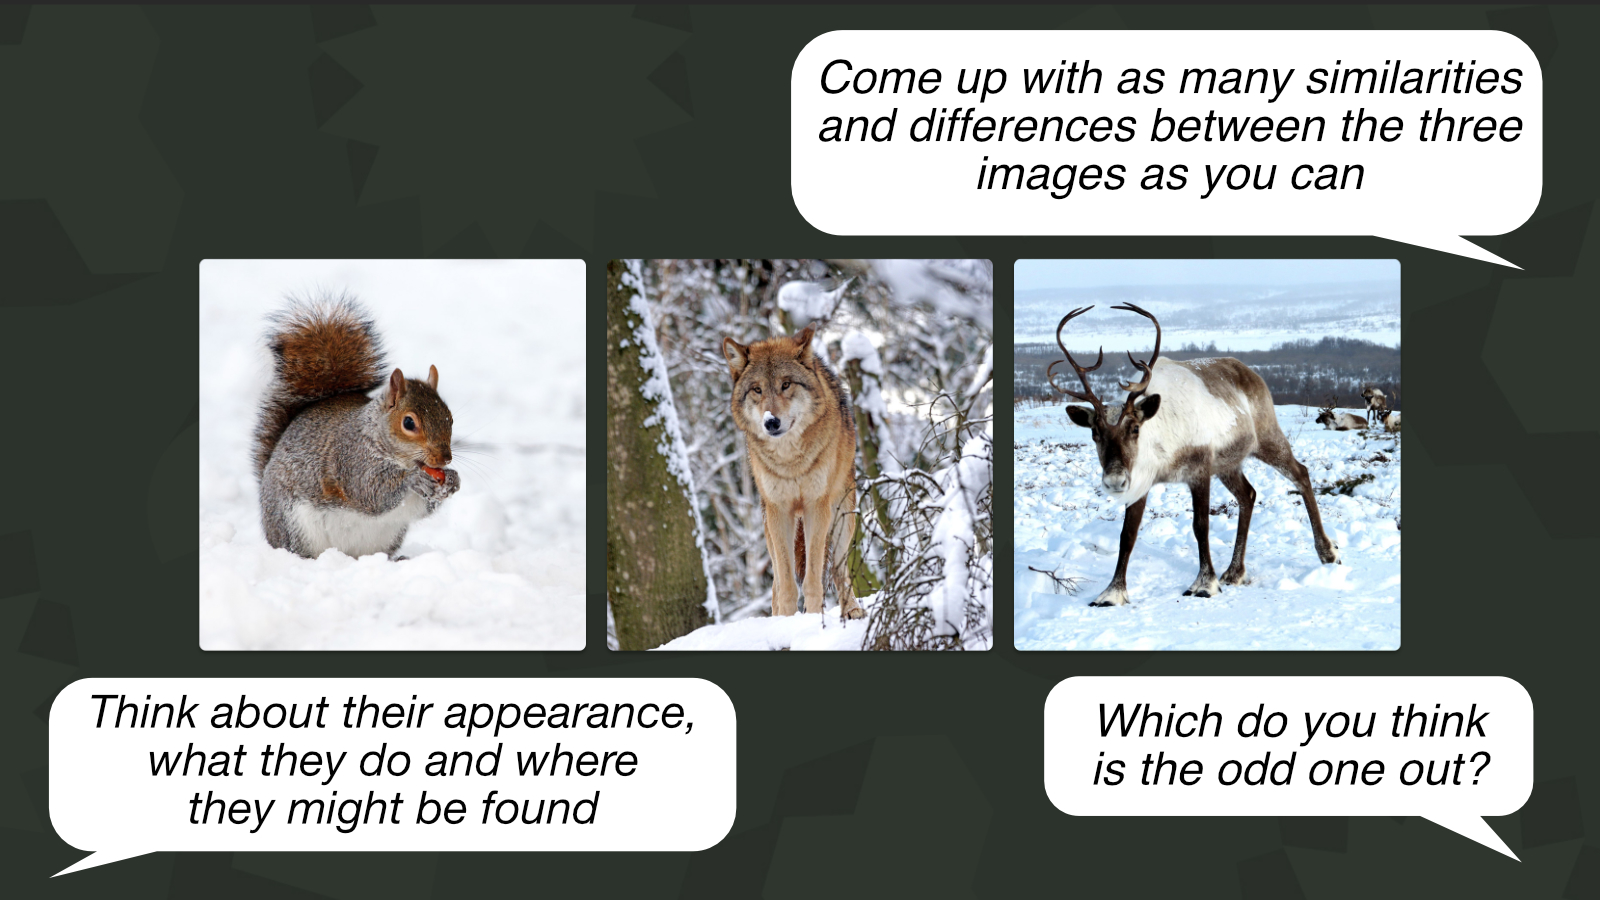 'Animals in winter' is an example of an 'Odd one out' activity